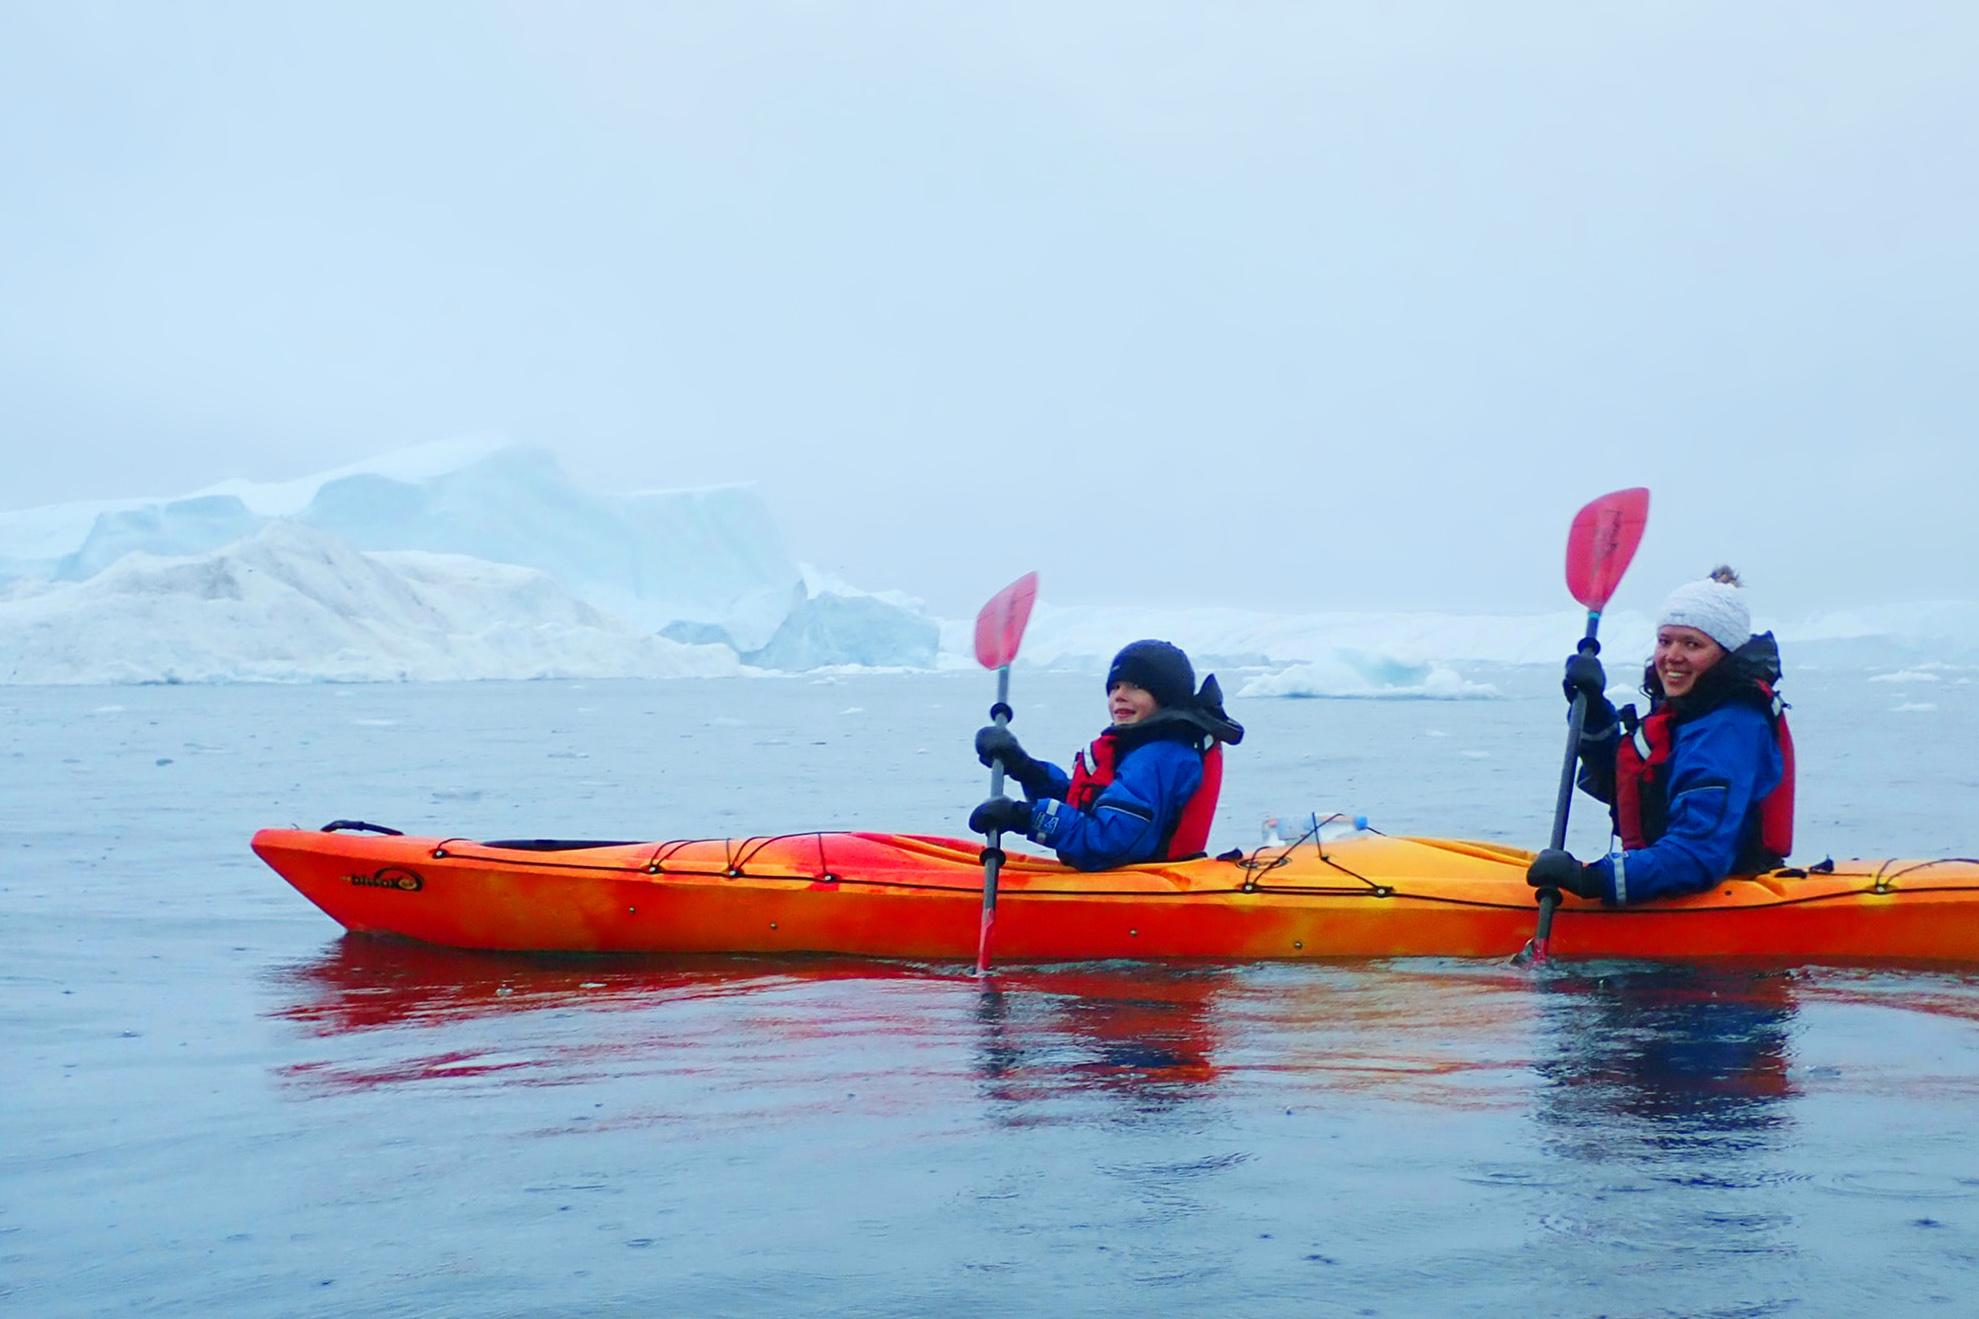 Family kayaking between icebergs in Greenland. Photo by Jurga Rubinovaite. Visit Greenland